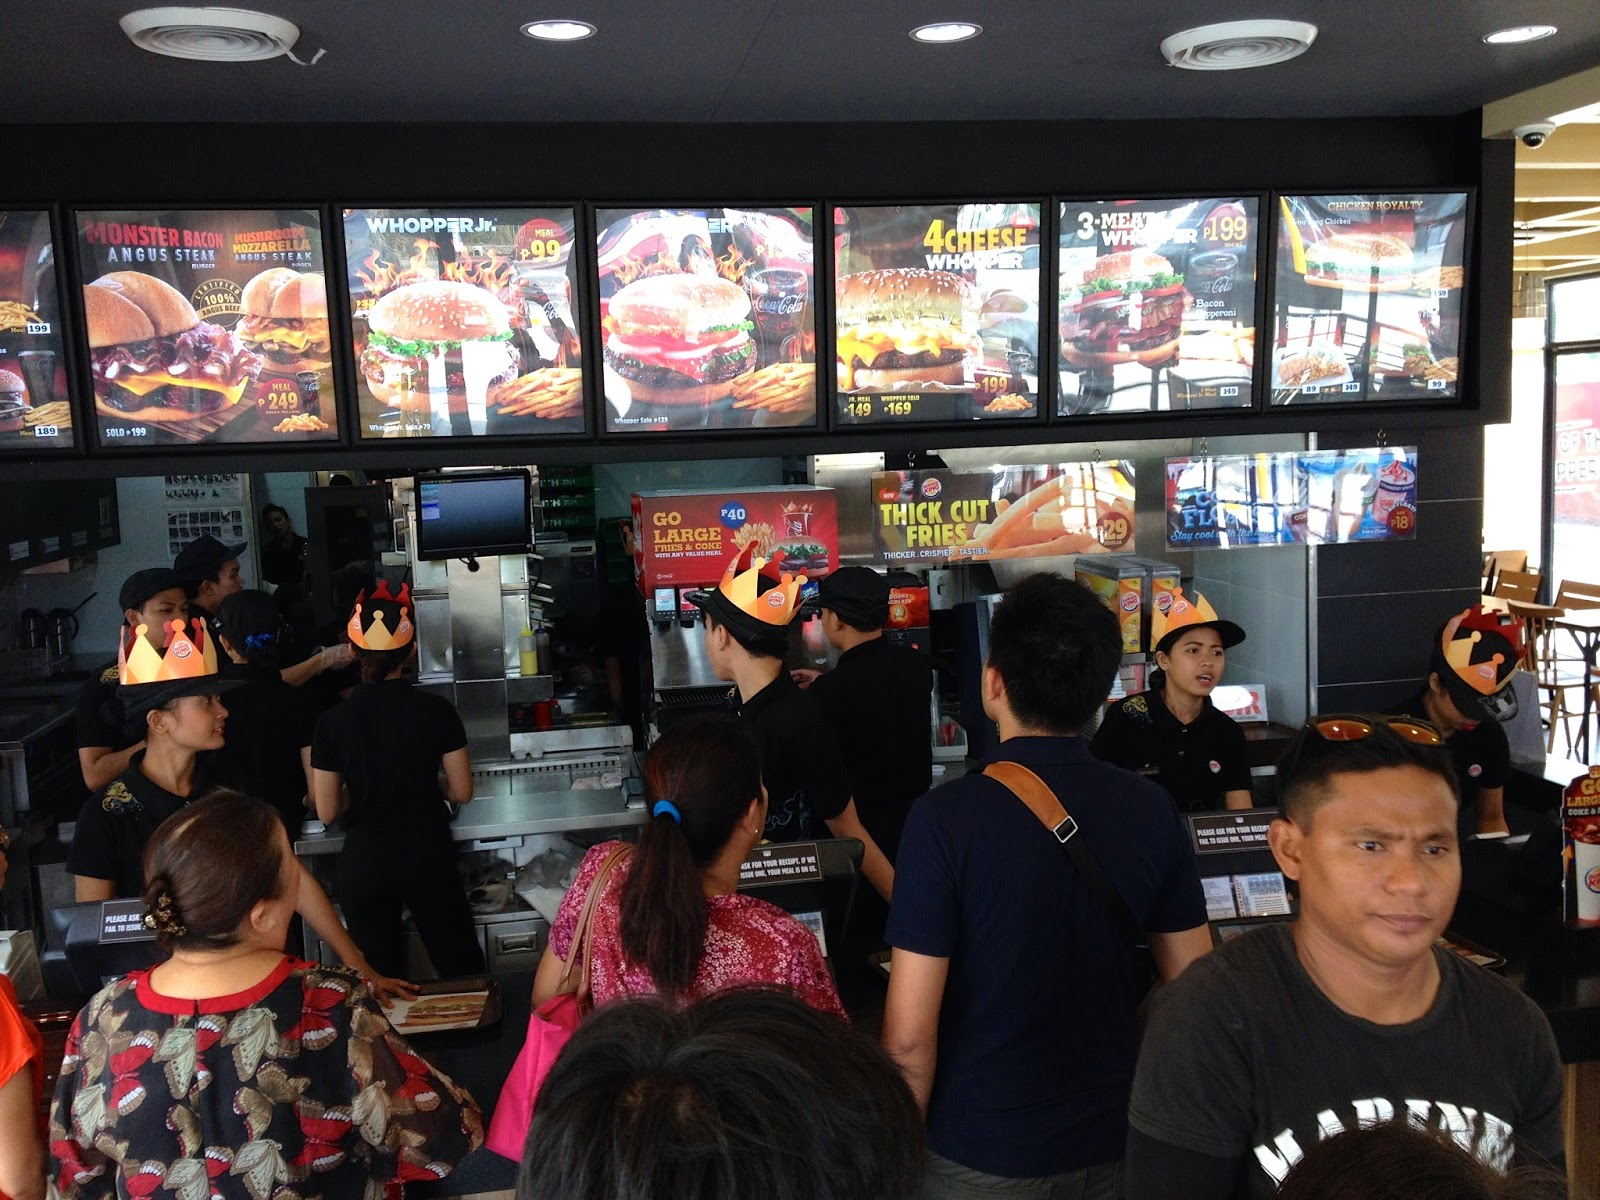 Whopper hunting in Cebu